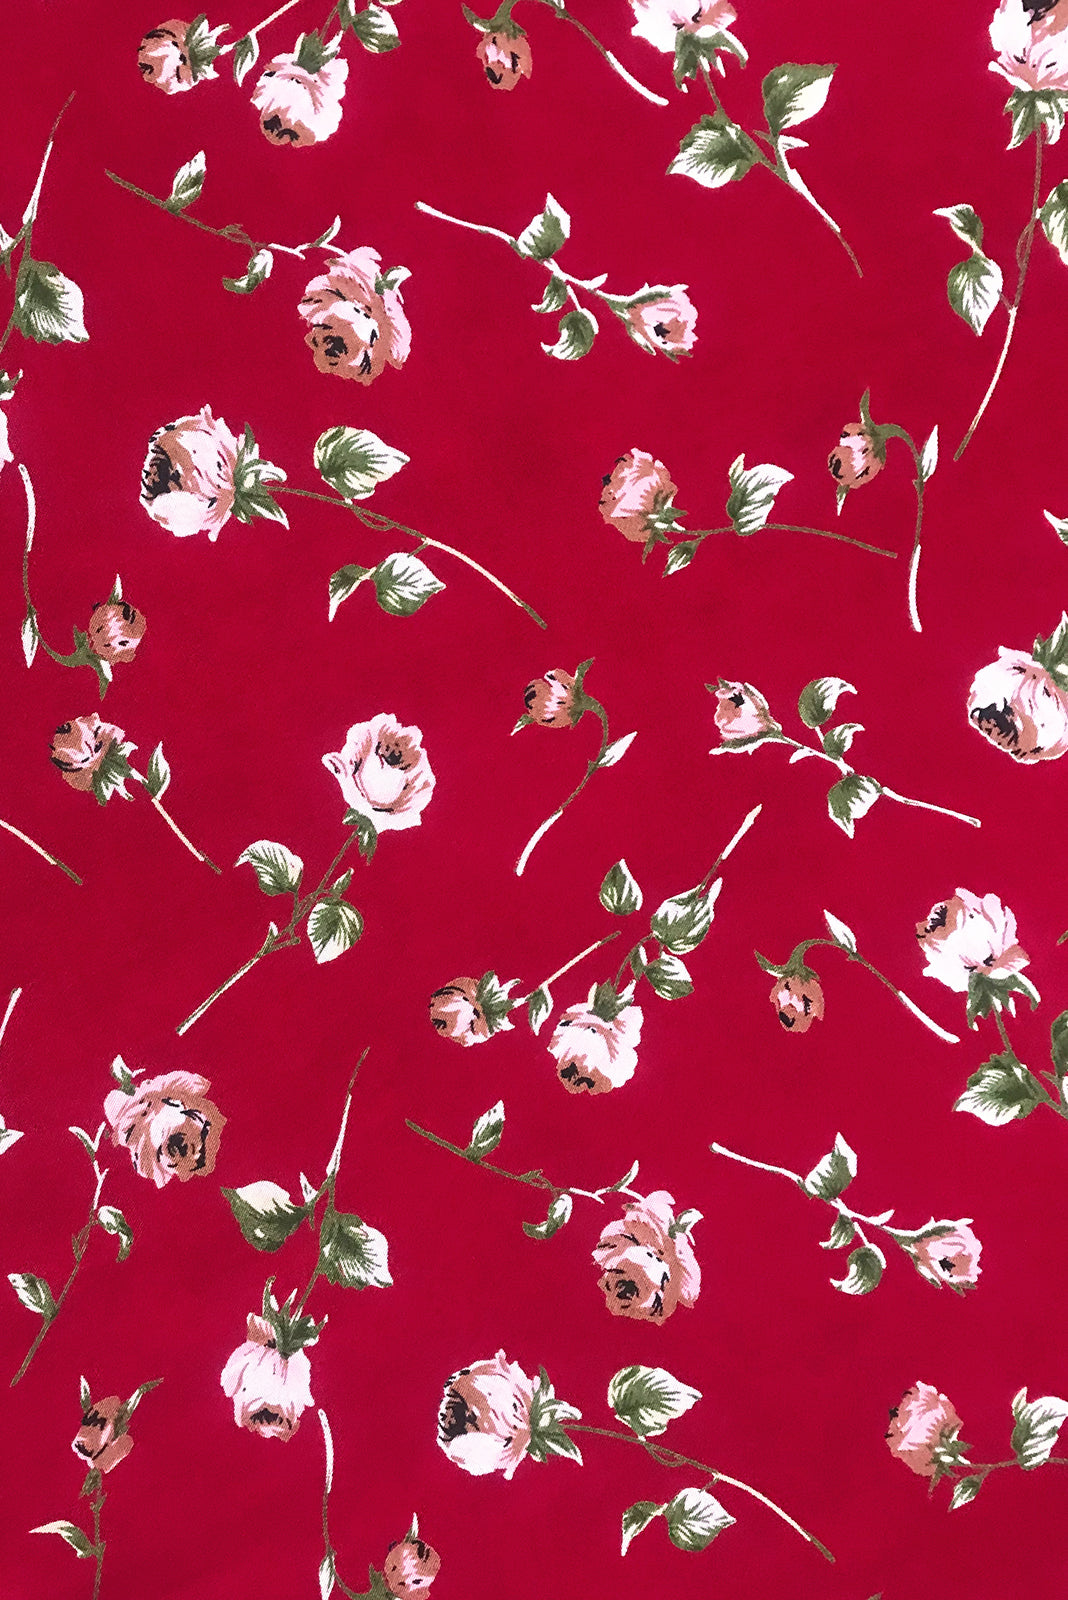 Fabric Swatch of Primrose Red Rosedrop Dress comes in woven 100% rayon in Crimson red base scattered with single stemmed roses.